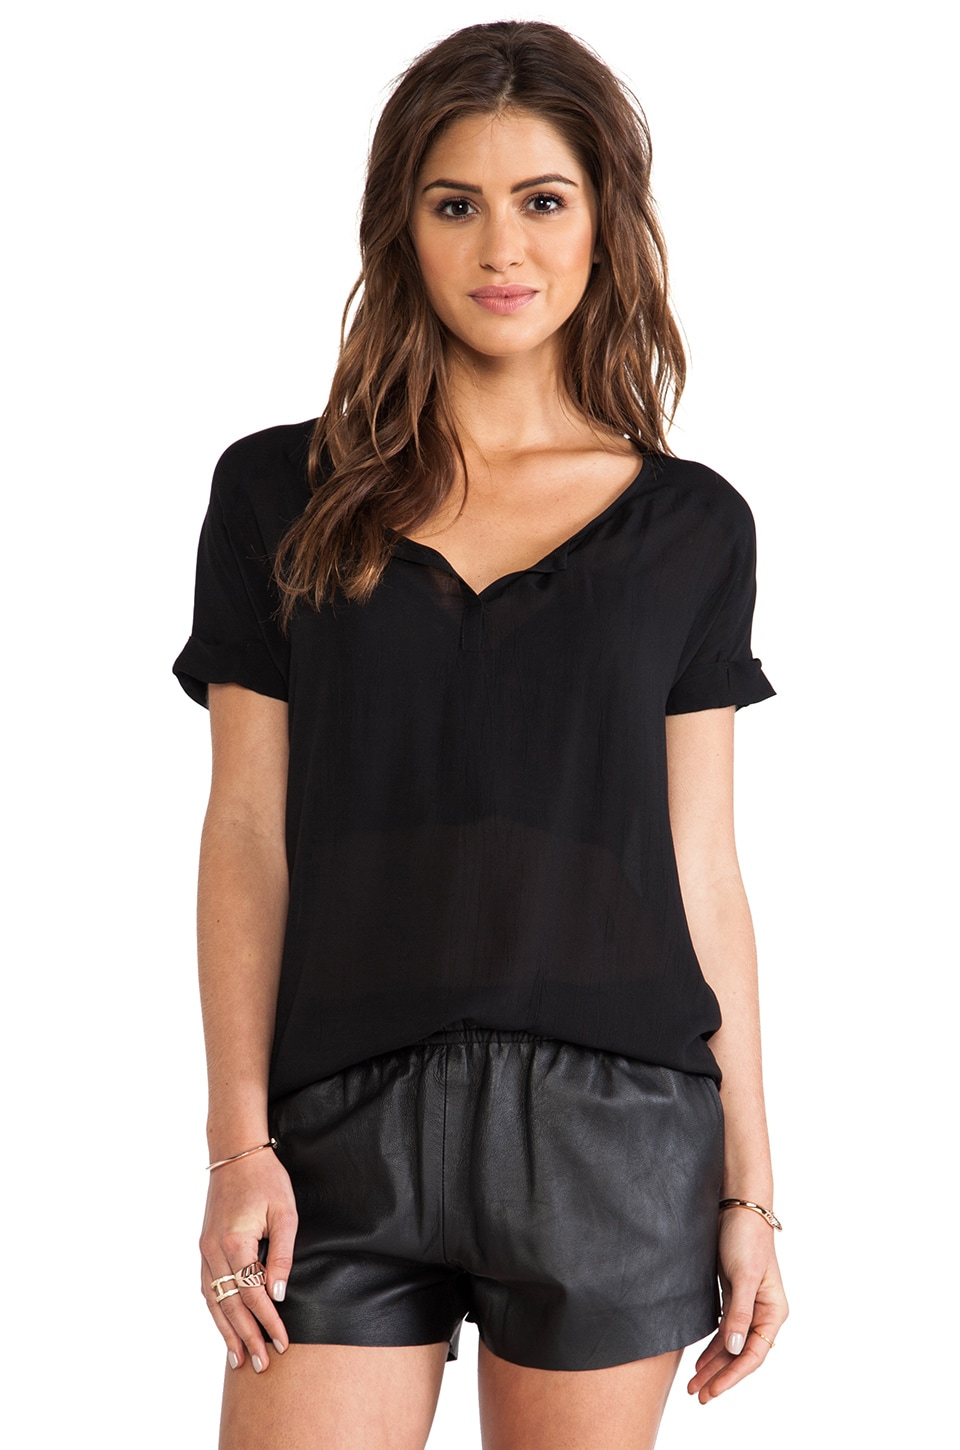 Bella Luxx Cuffed Henley Top in Black